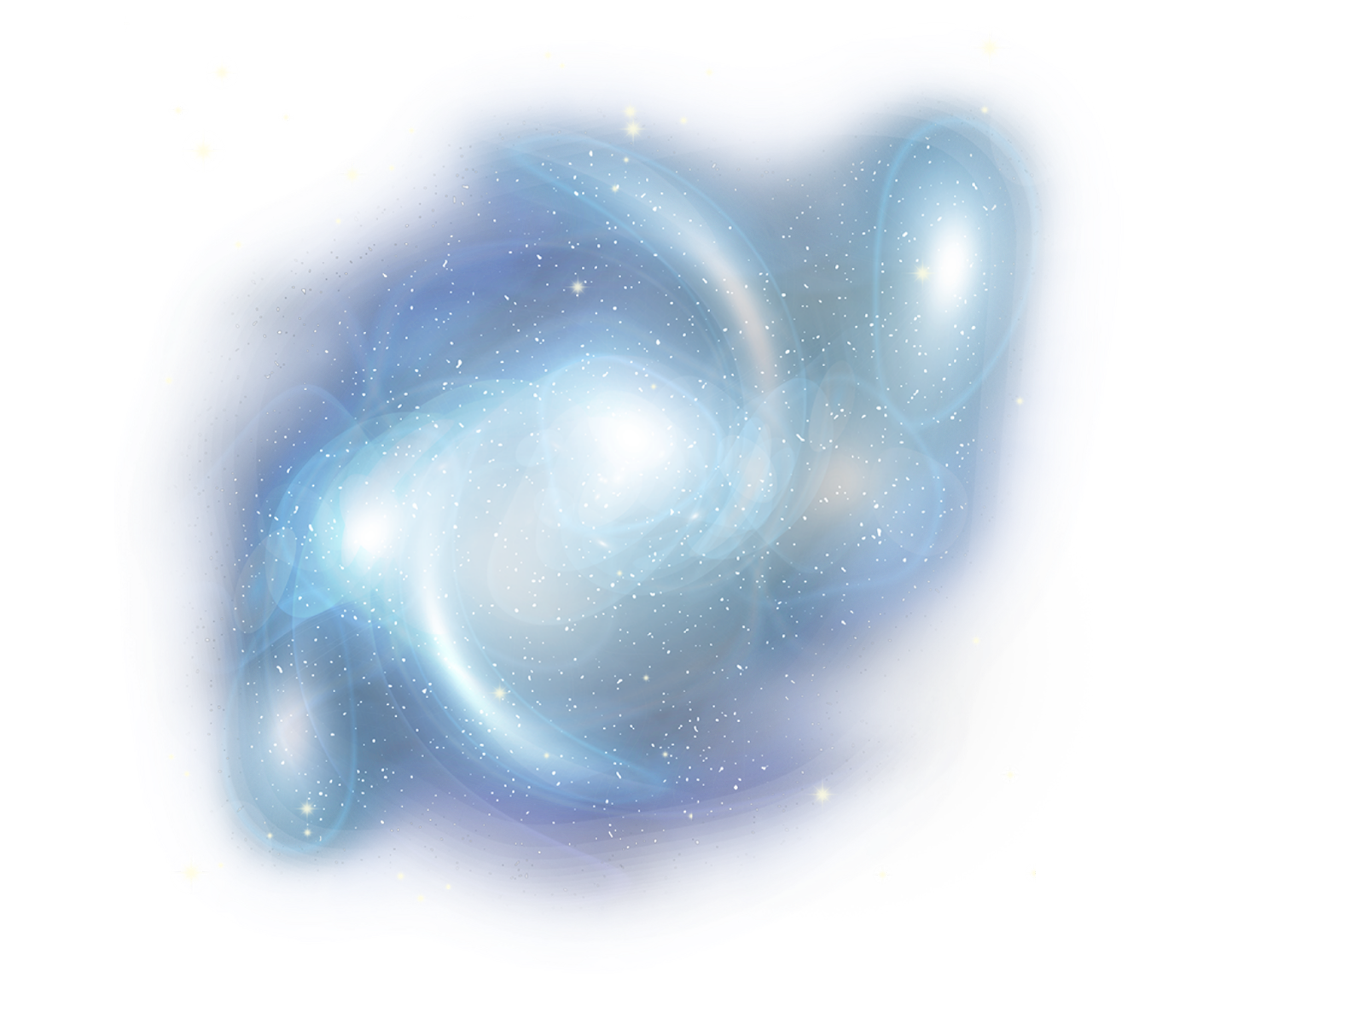 Galaxy png. Freetoedit clipart stars with